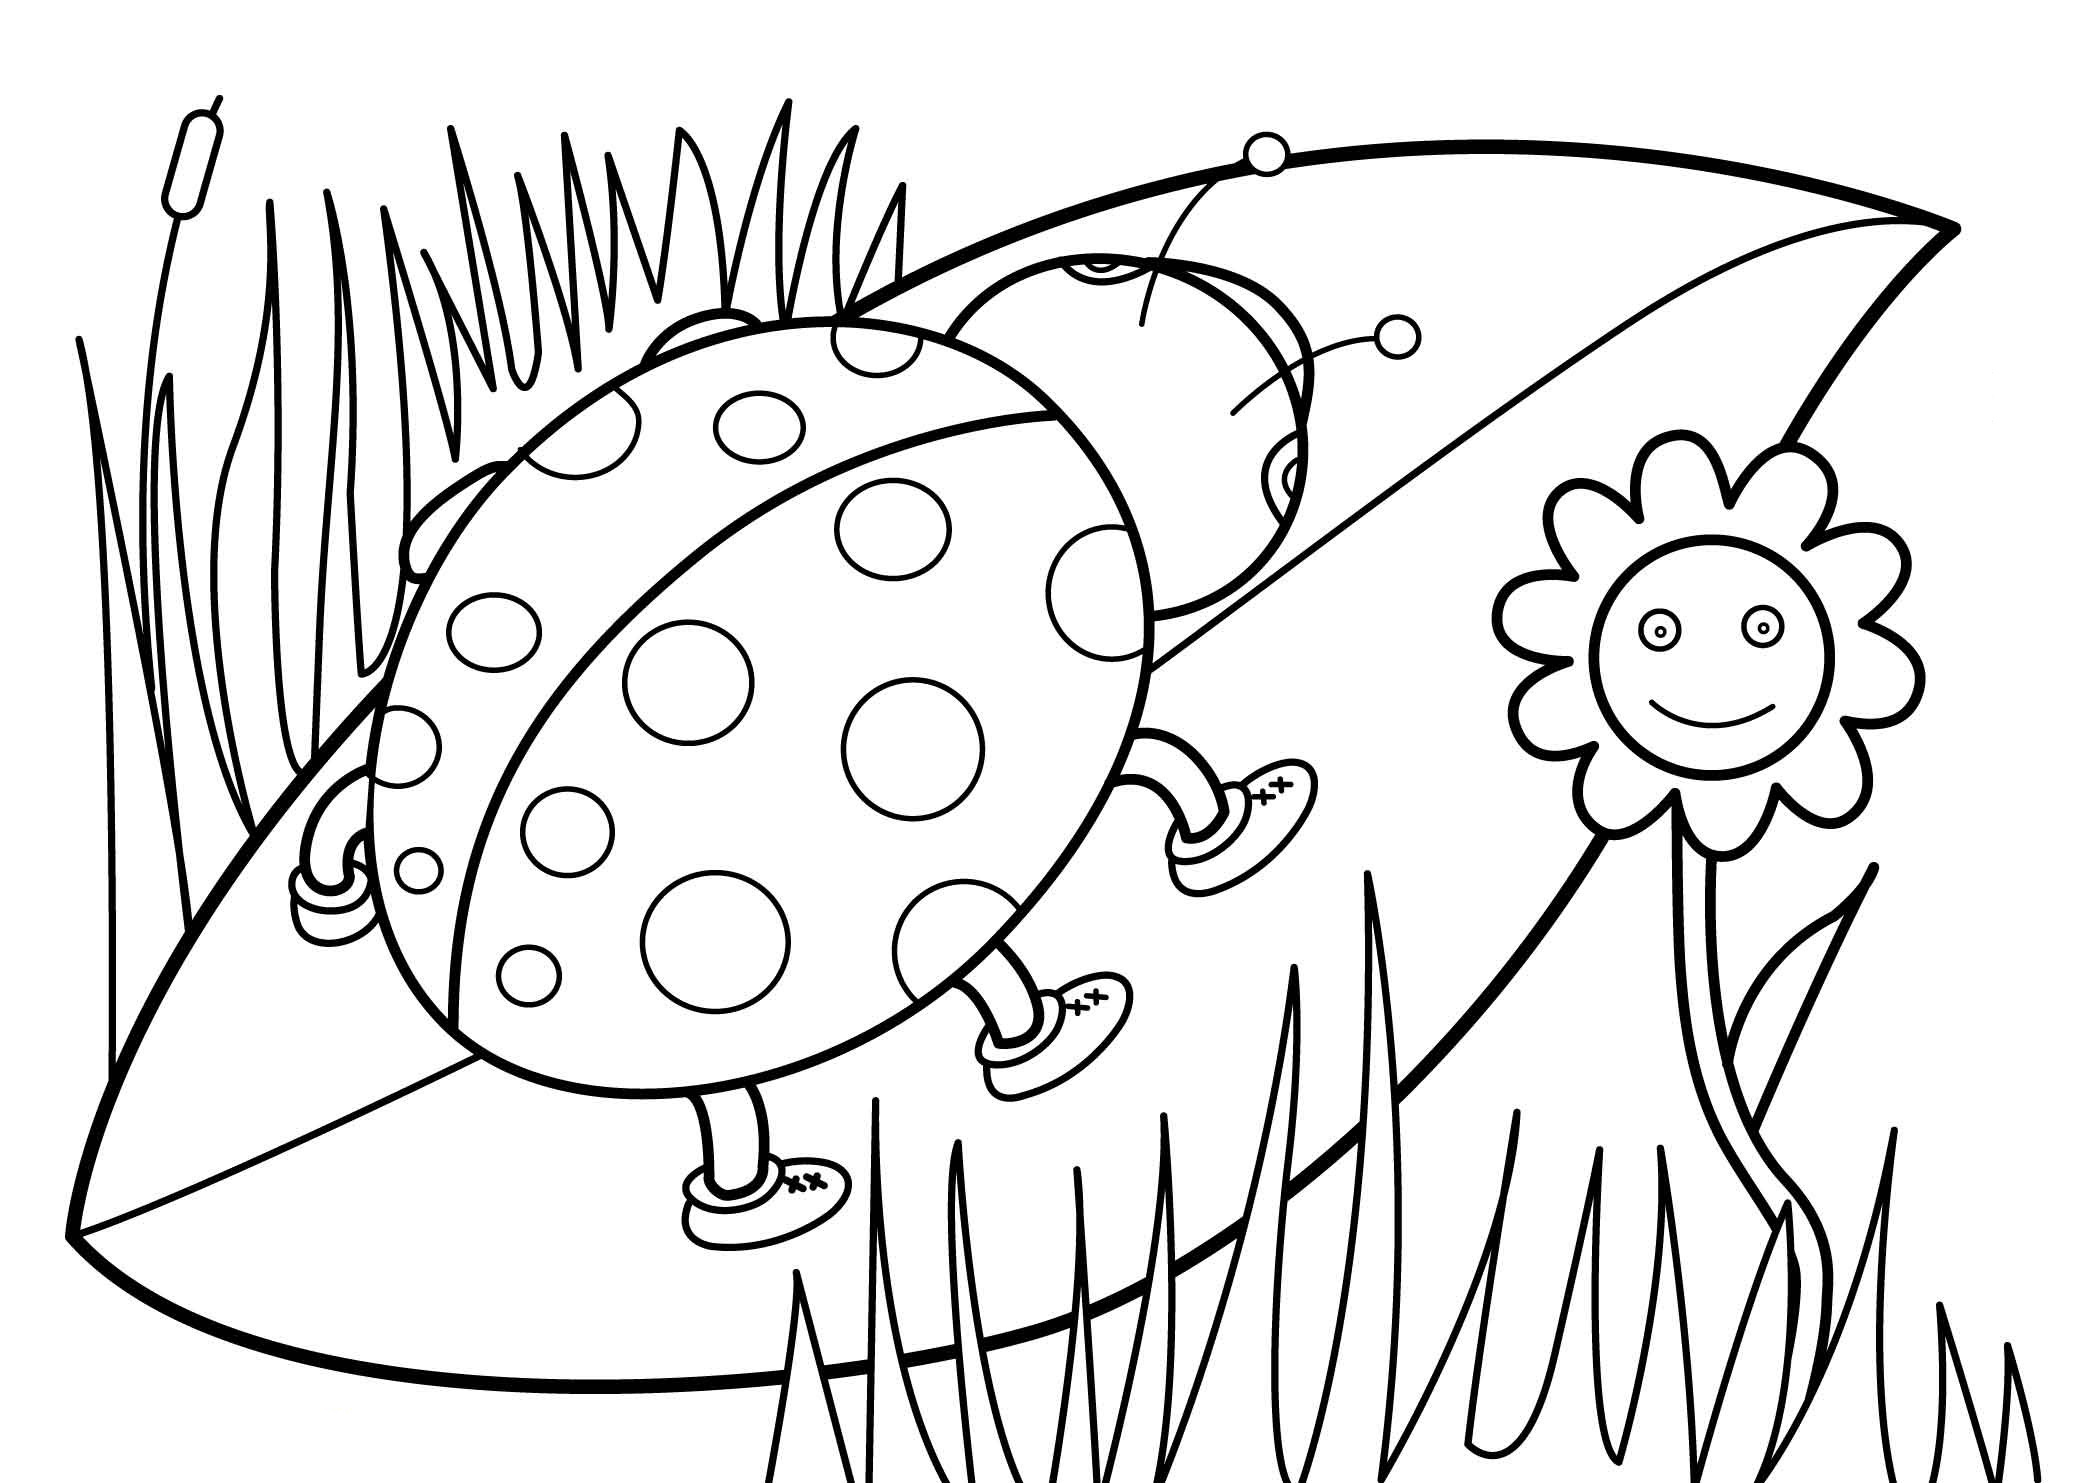 coloring sheets kids childrens disney coloring pages download and print for free kids coloring sheets